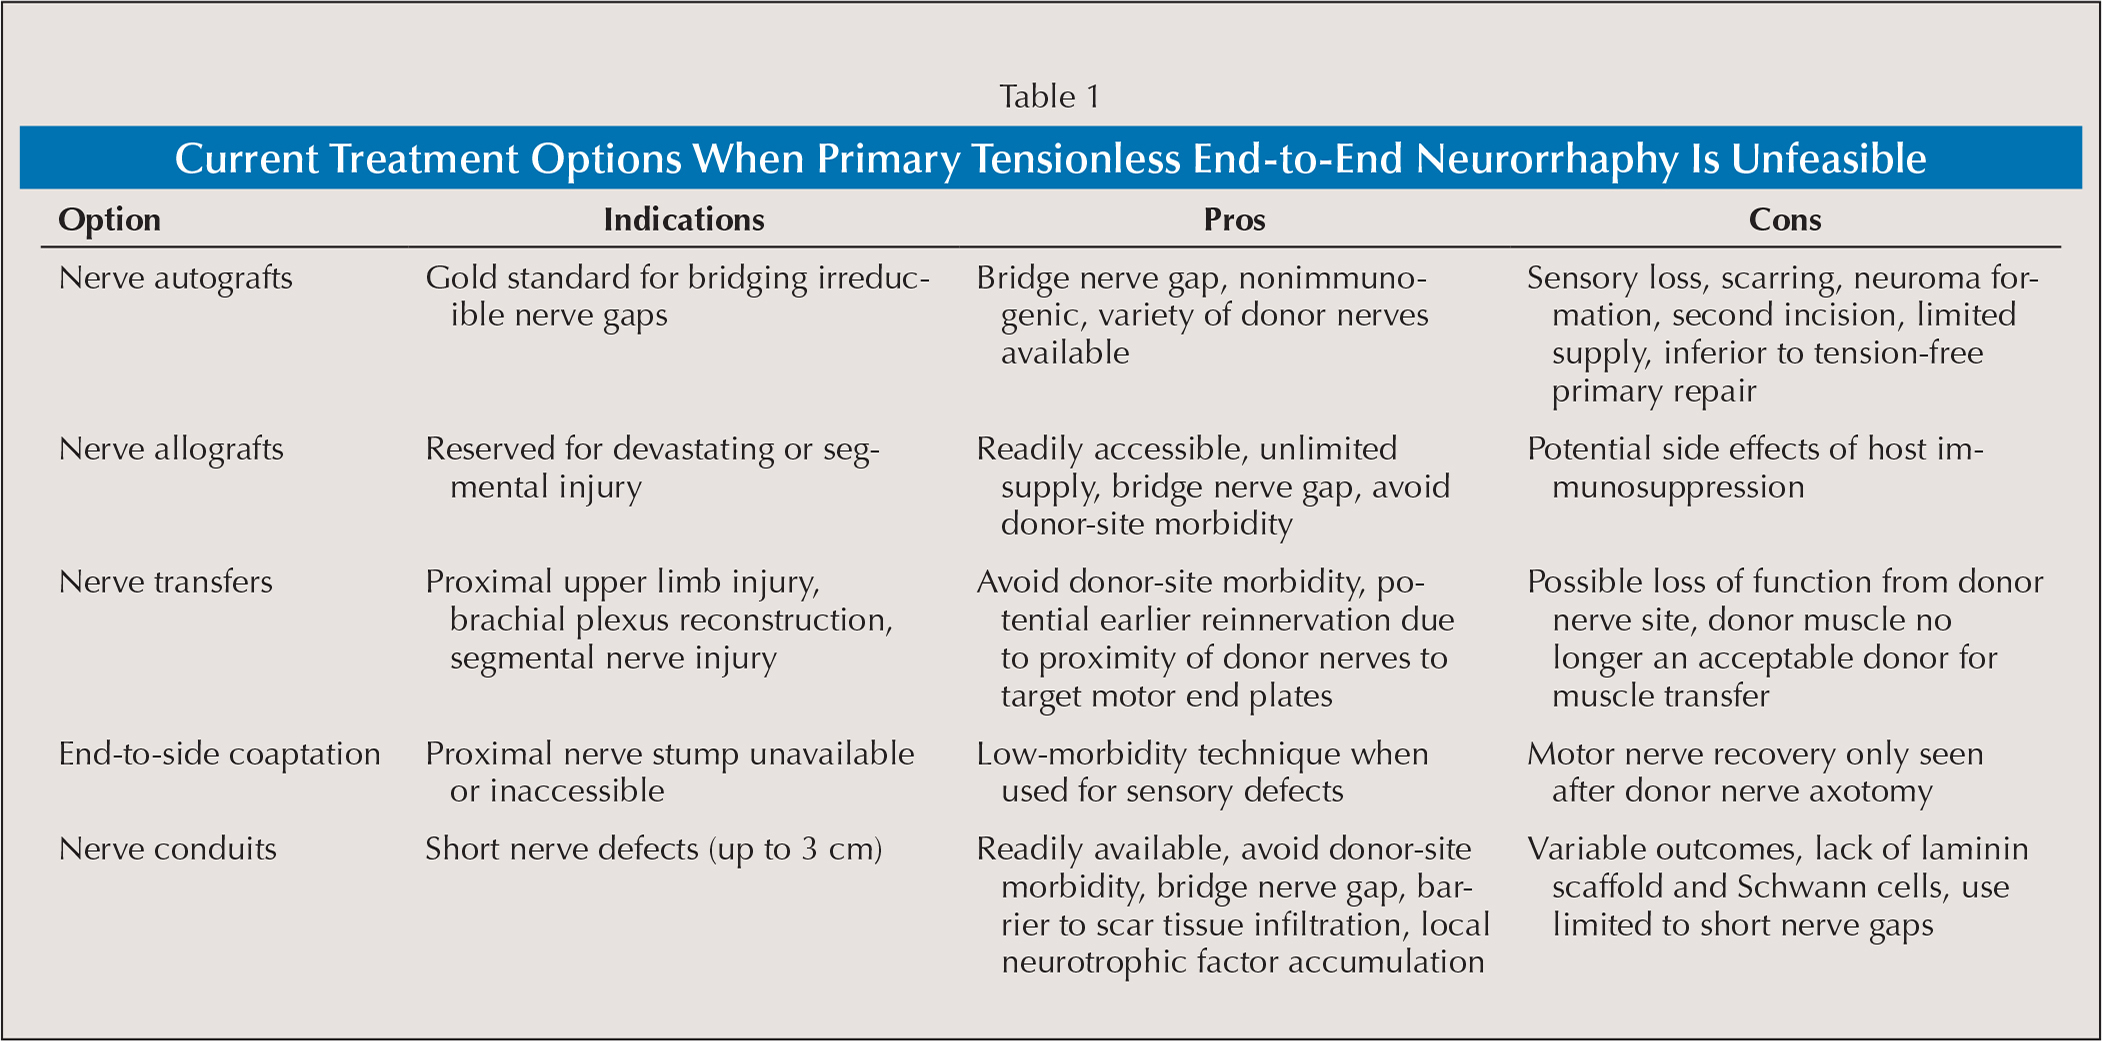 Current Treatment Options When Primary Tensionless End-to-End Neurorrhaphy Is Unfeasible